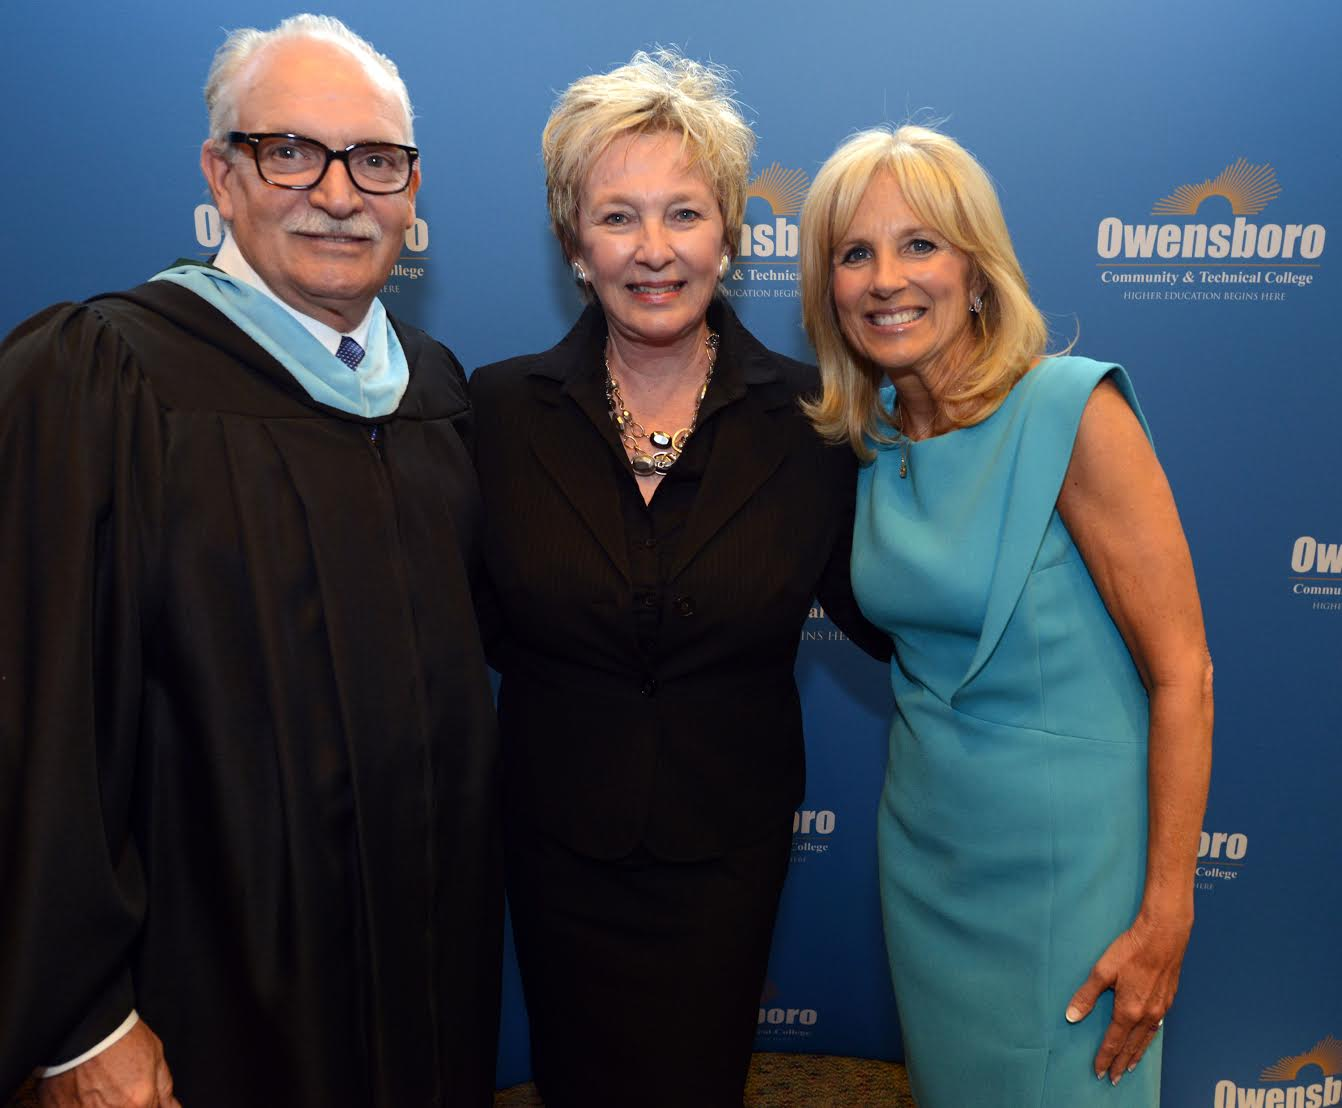 Mike, his wife Joan, and Dr. Jill Biden at the Owensboro Community & Technical College graduation ceremony.